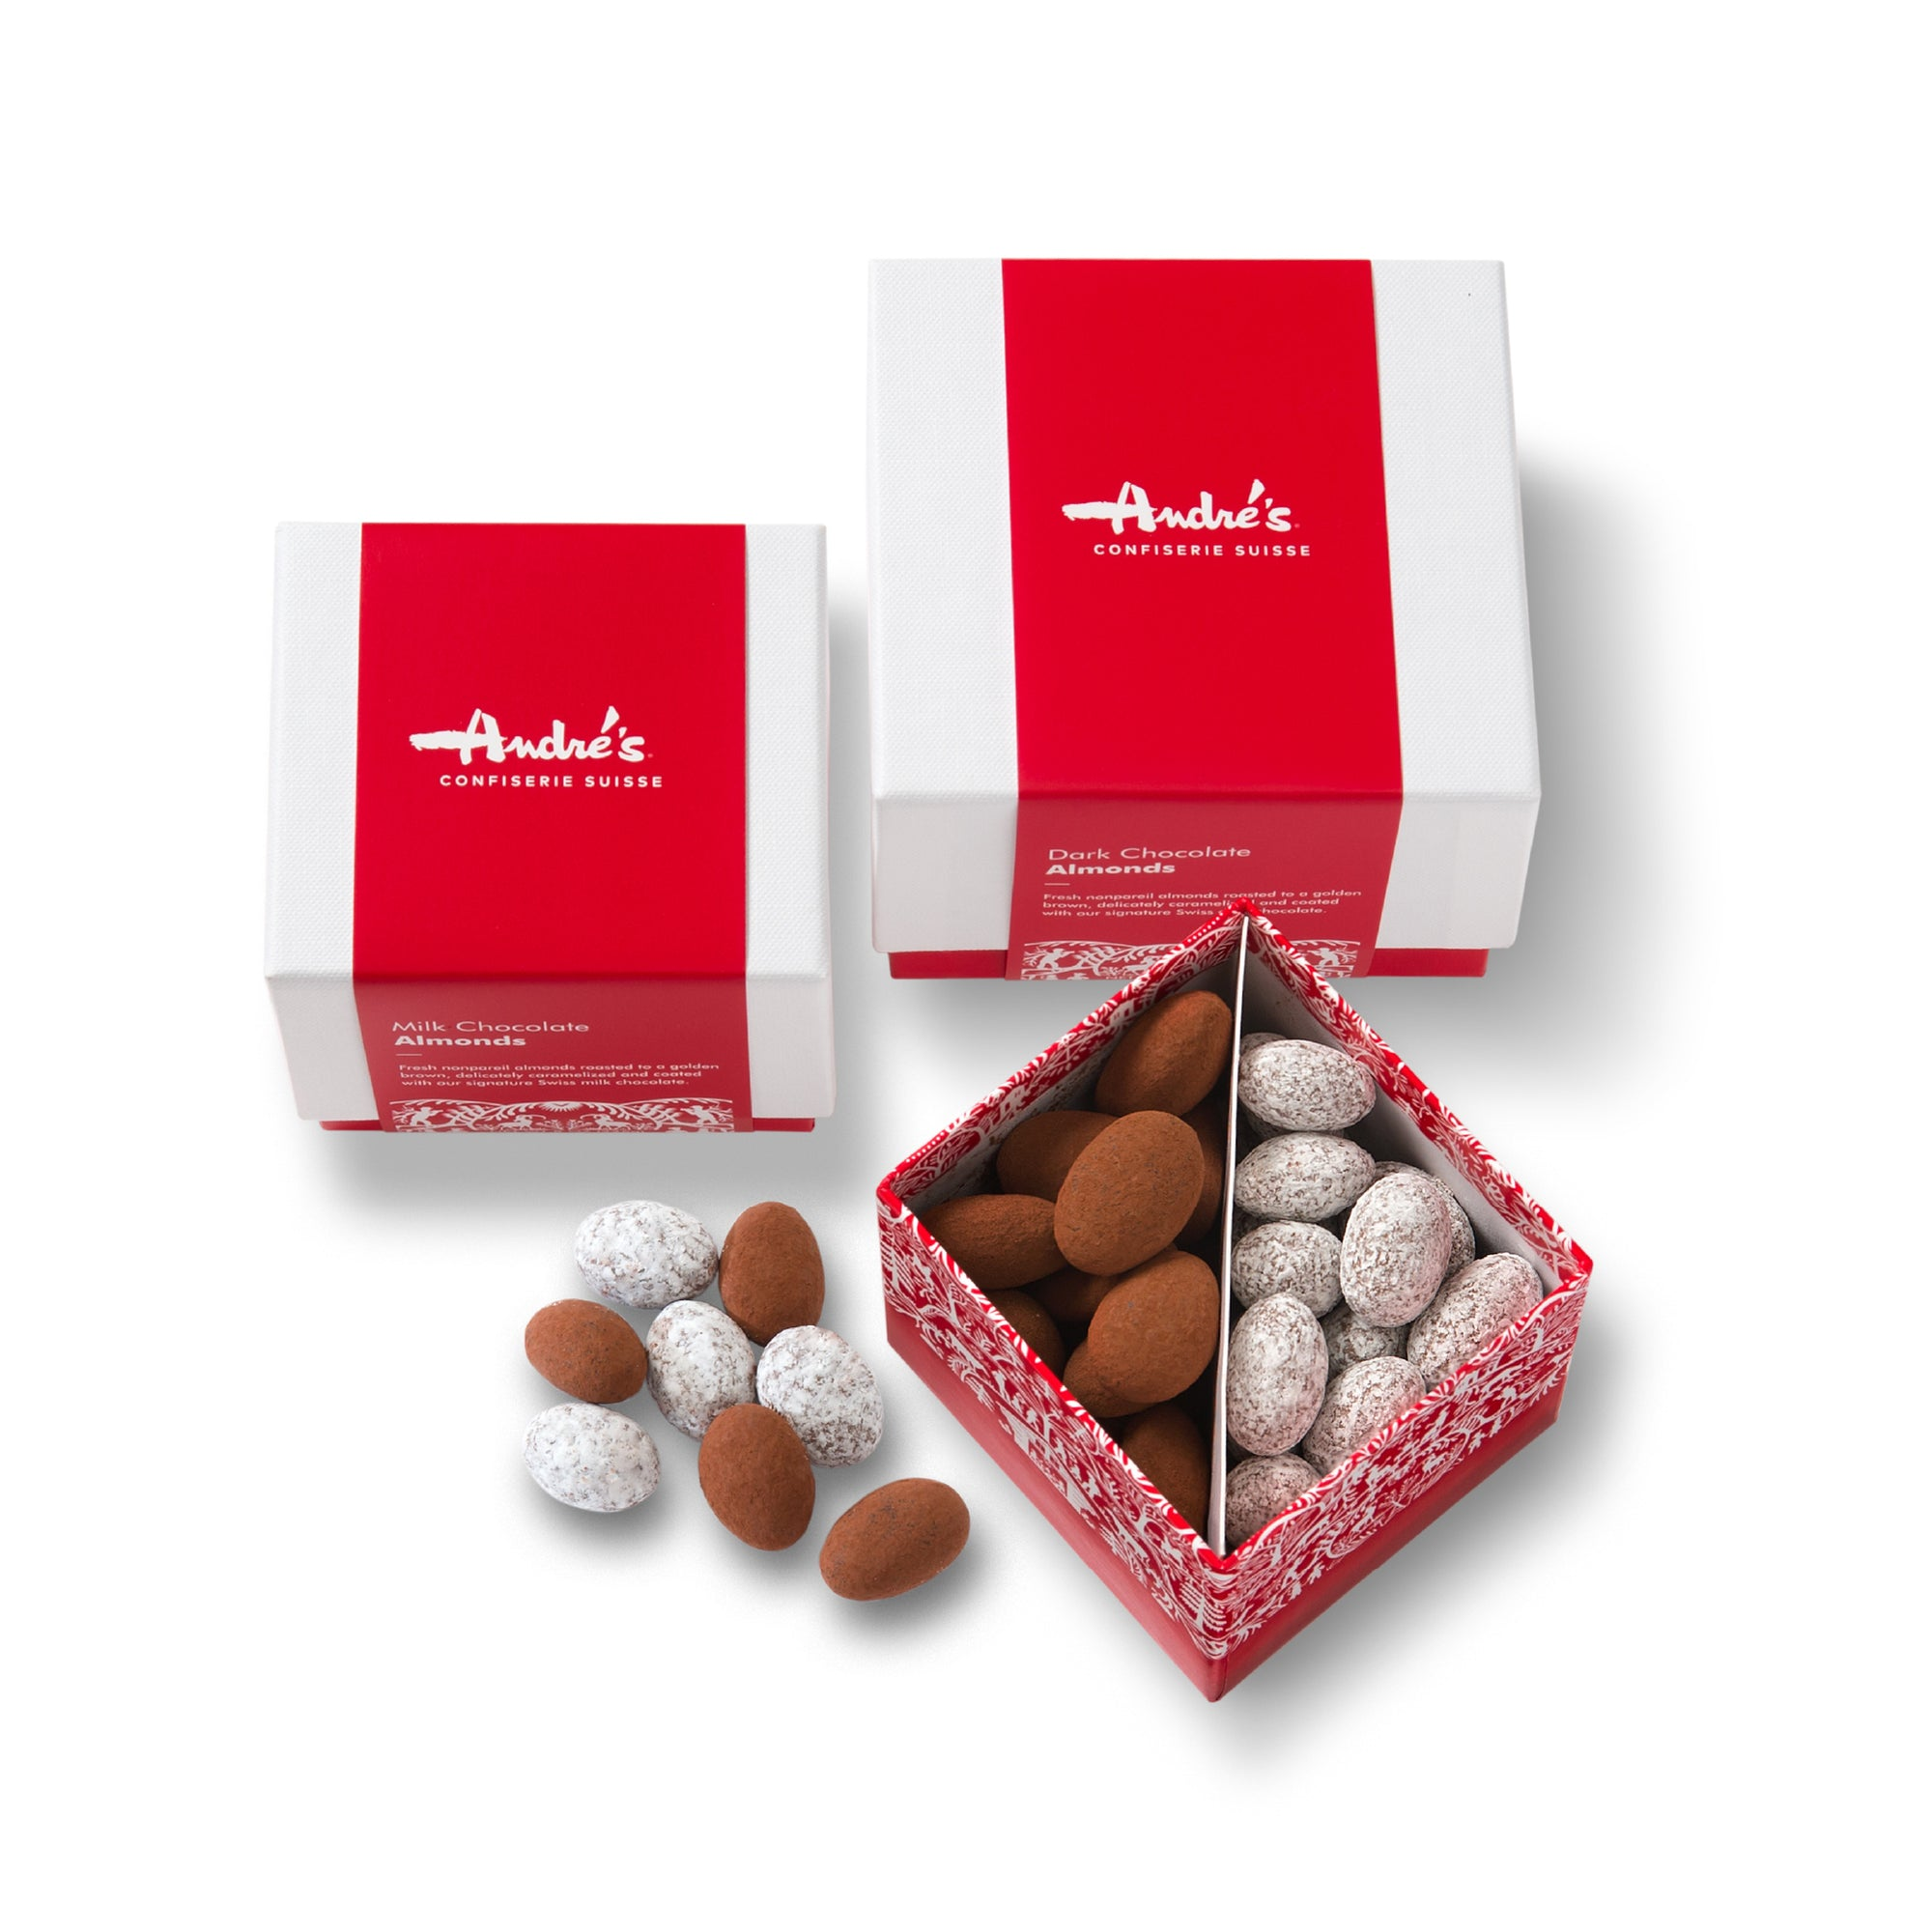 Signature Chocolate Almonds